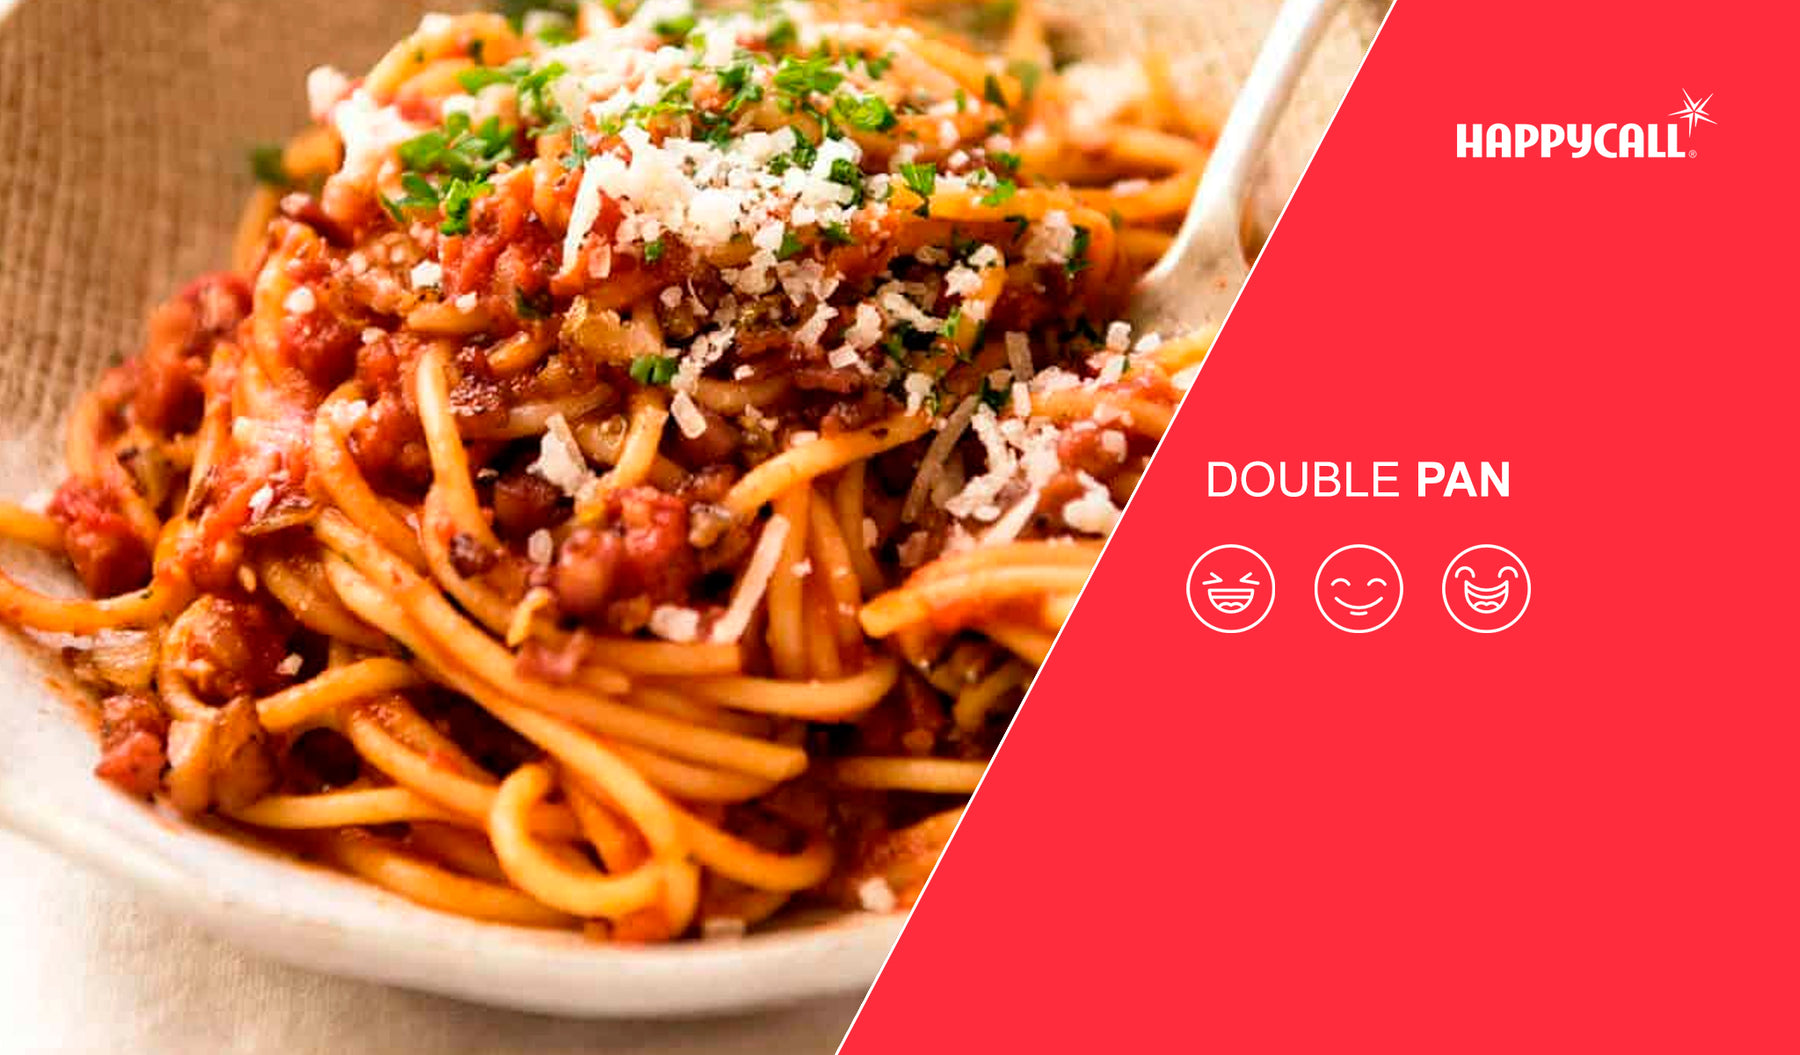 Quick cook bacon and prawn spaghetti with our new Synchro Detachable Double Pan